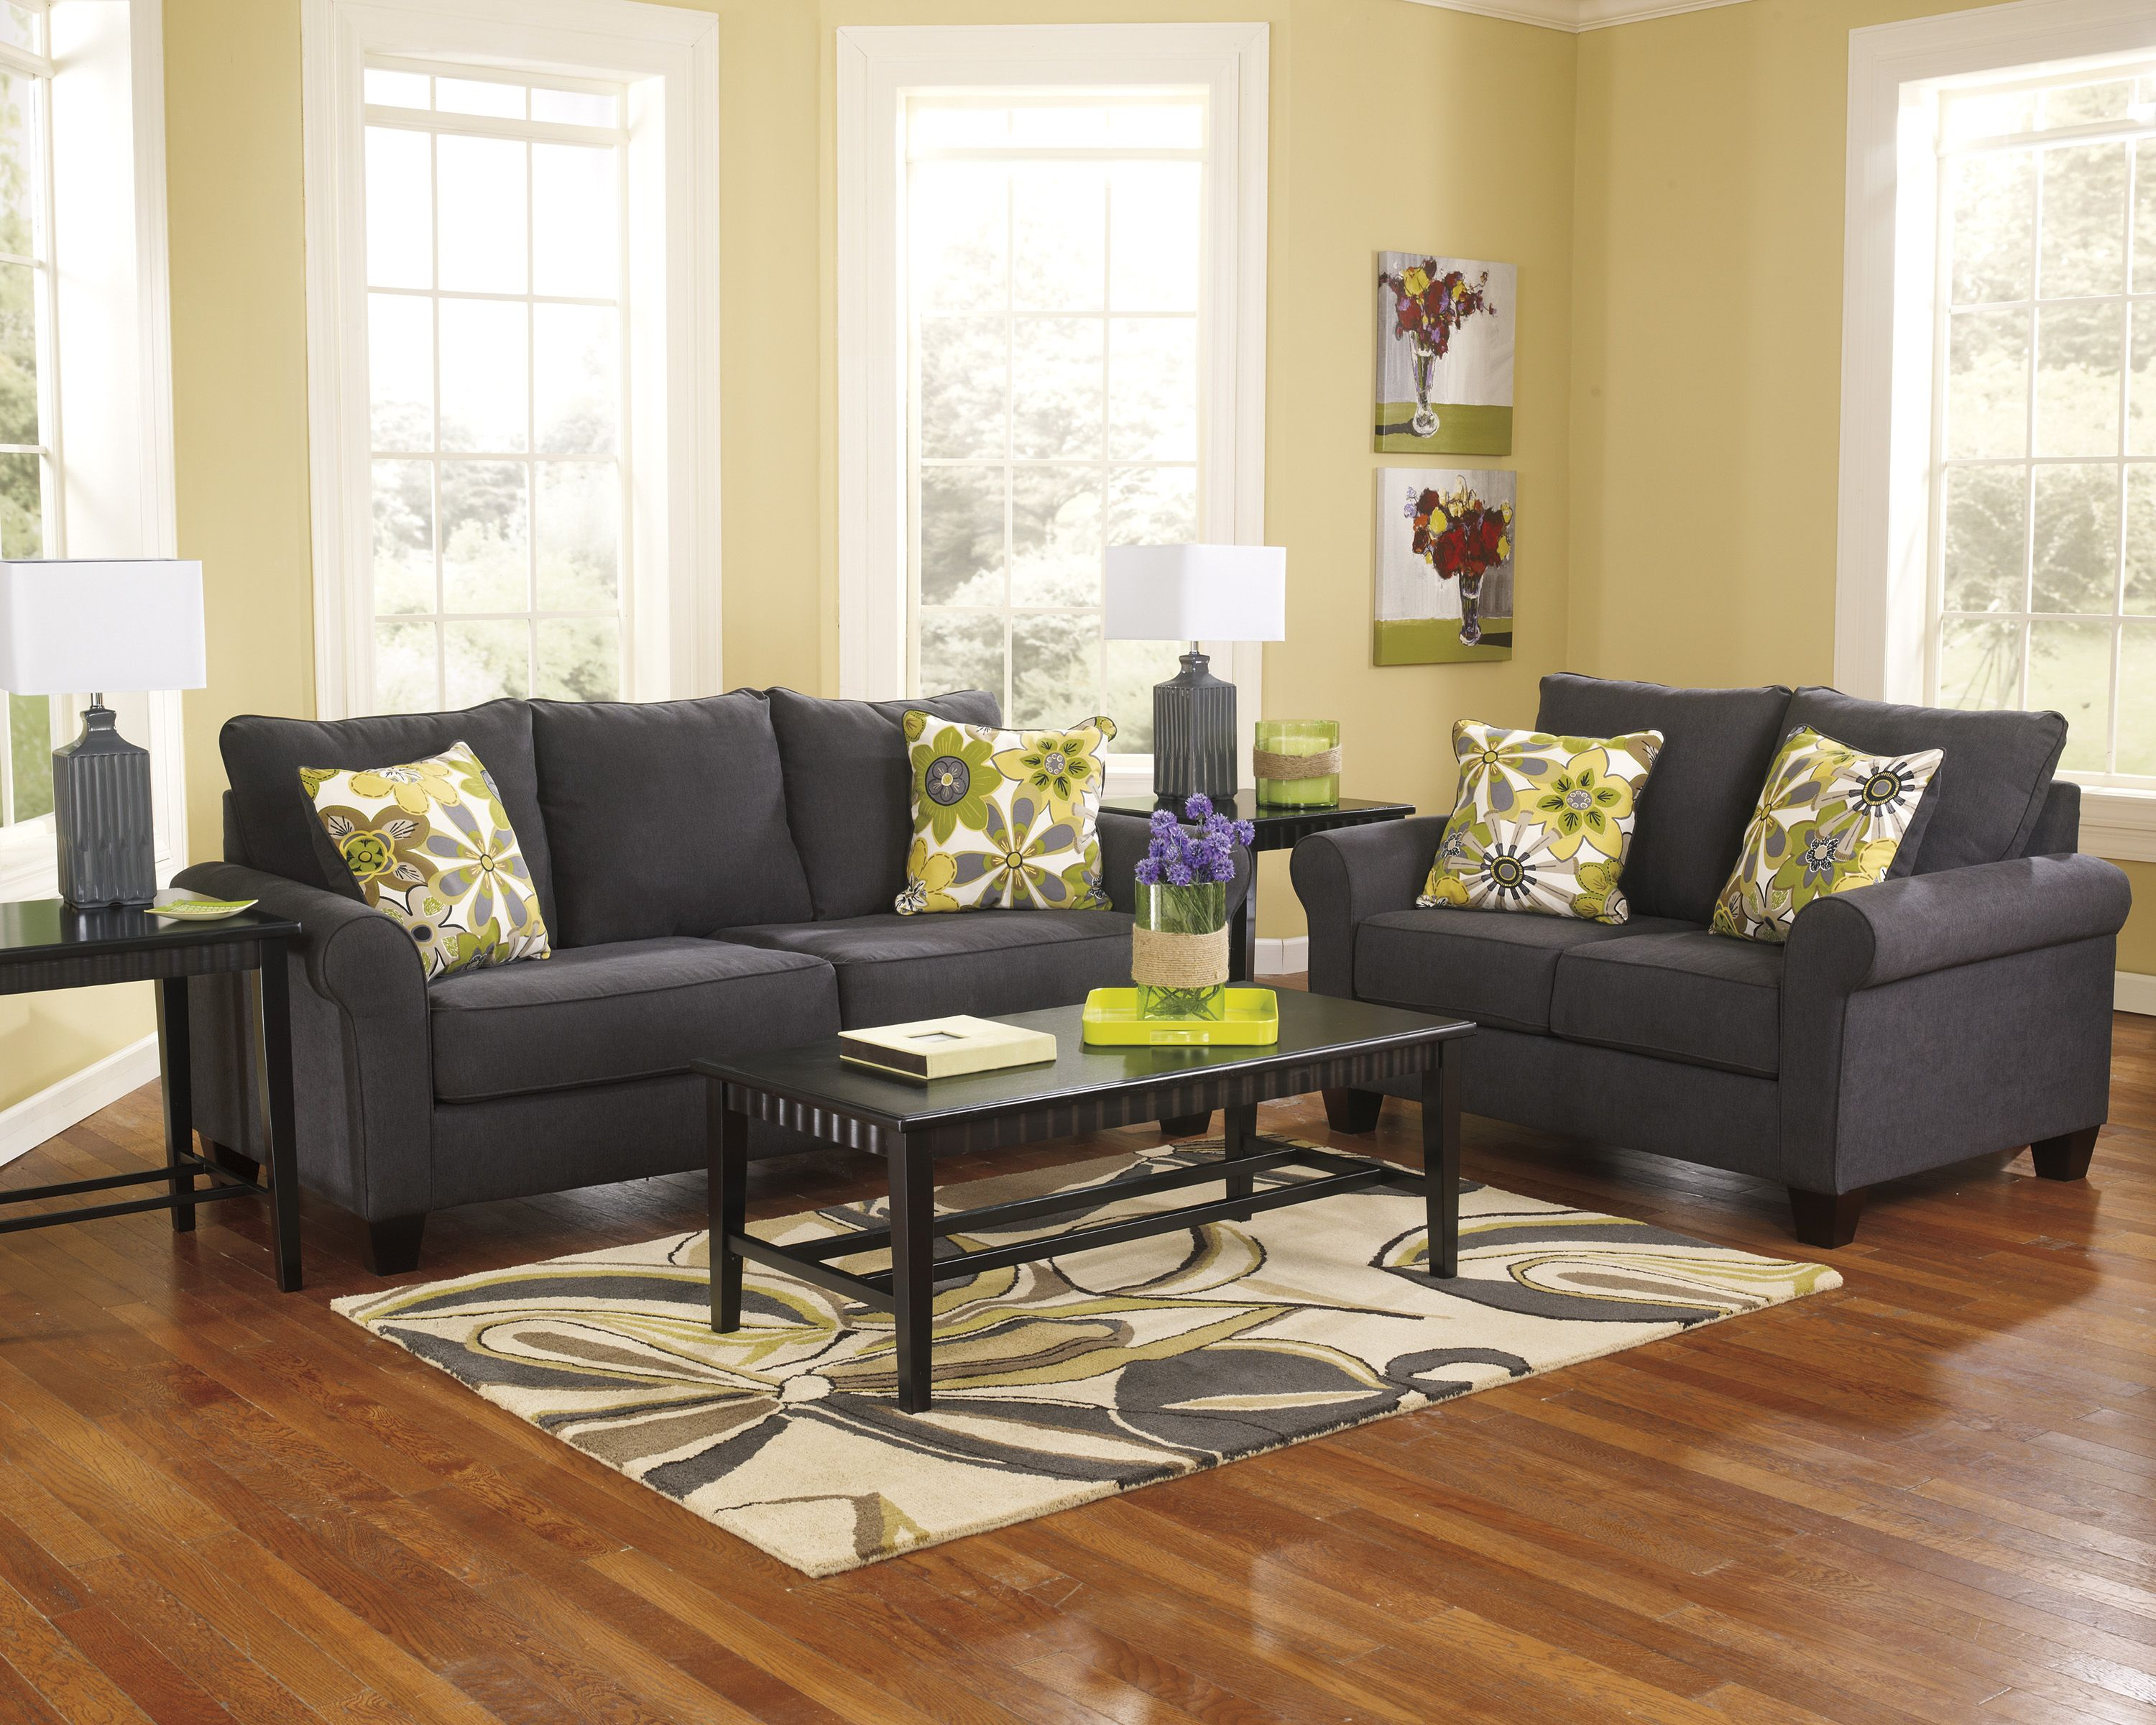 ideas about Ashley Furniture Chicago on Pinterest Couch